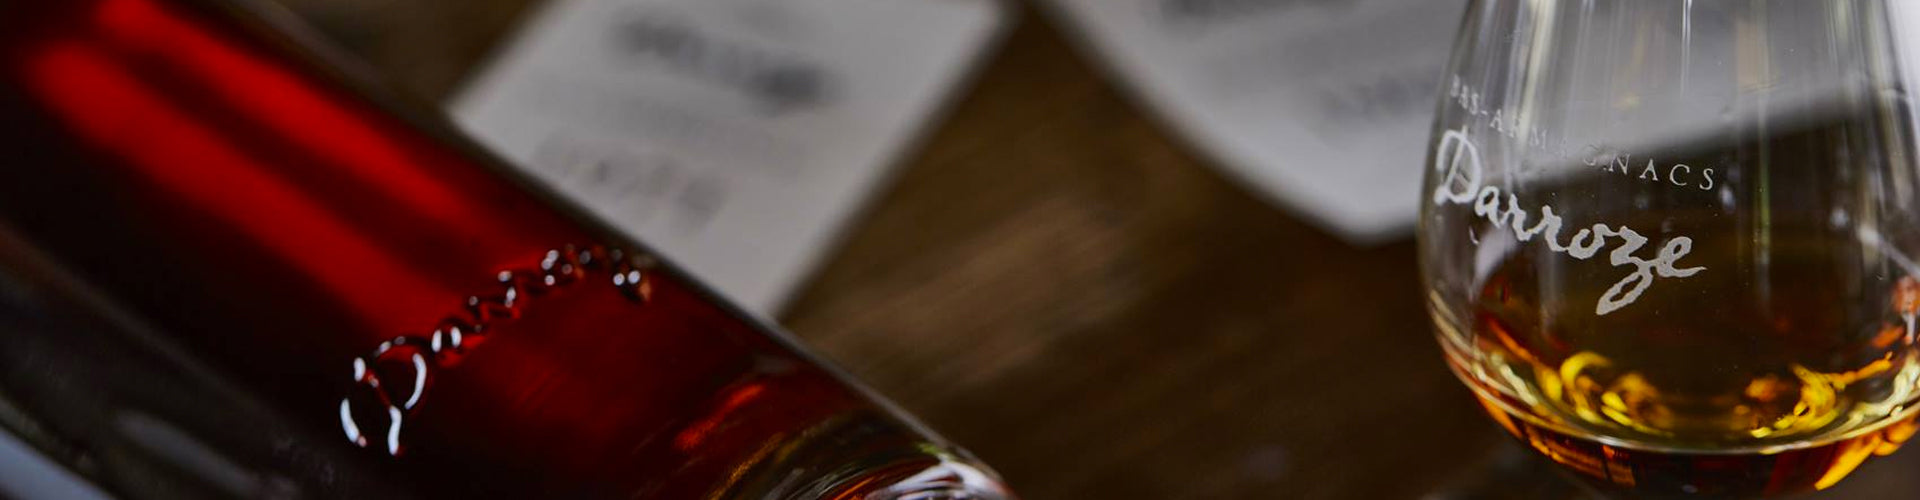 Darroze Armagnacs Collection Banner Image